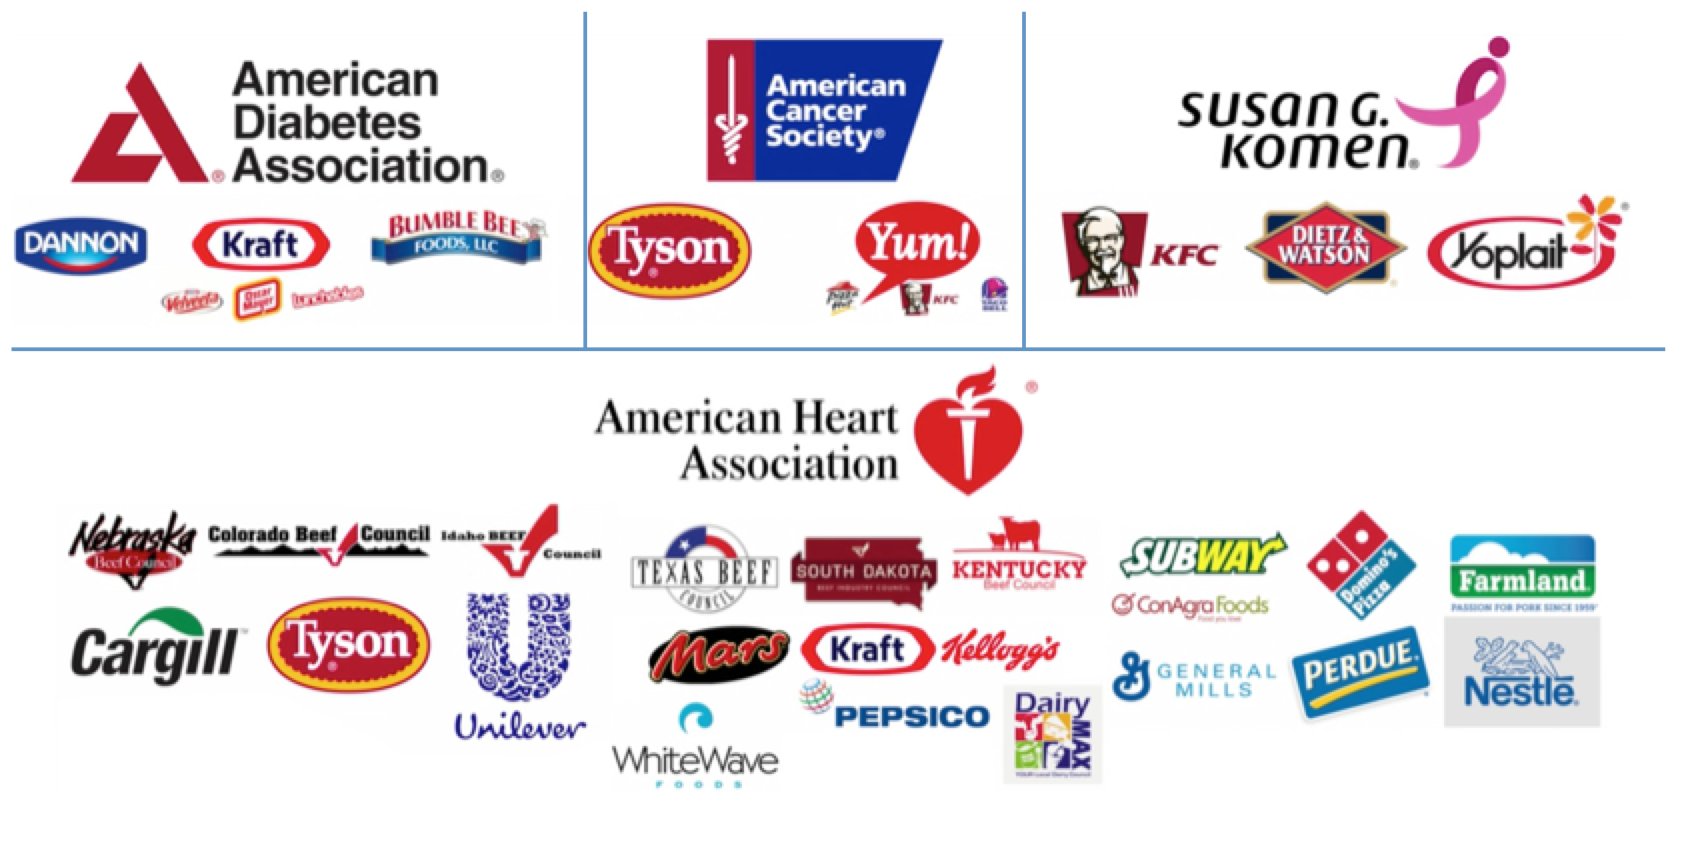 According to What the Health, many studies on the health effects of consuming meat and dairy products are being performed by major health organizations which are funded by companies that sell these products.